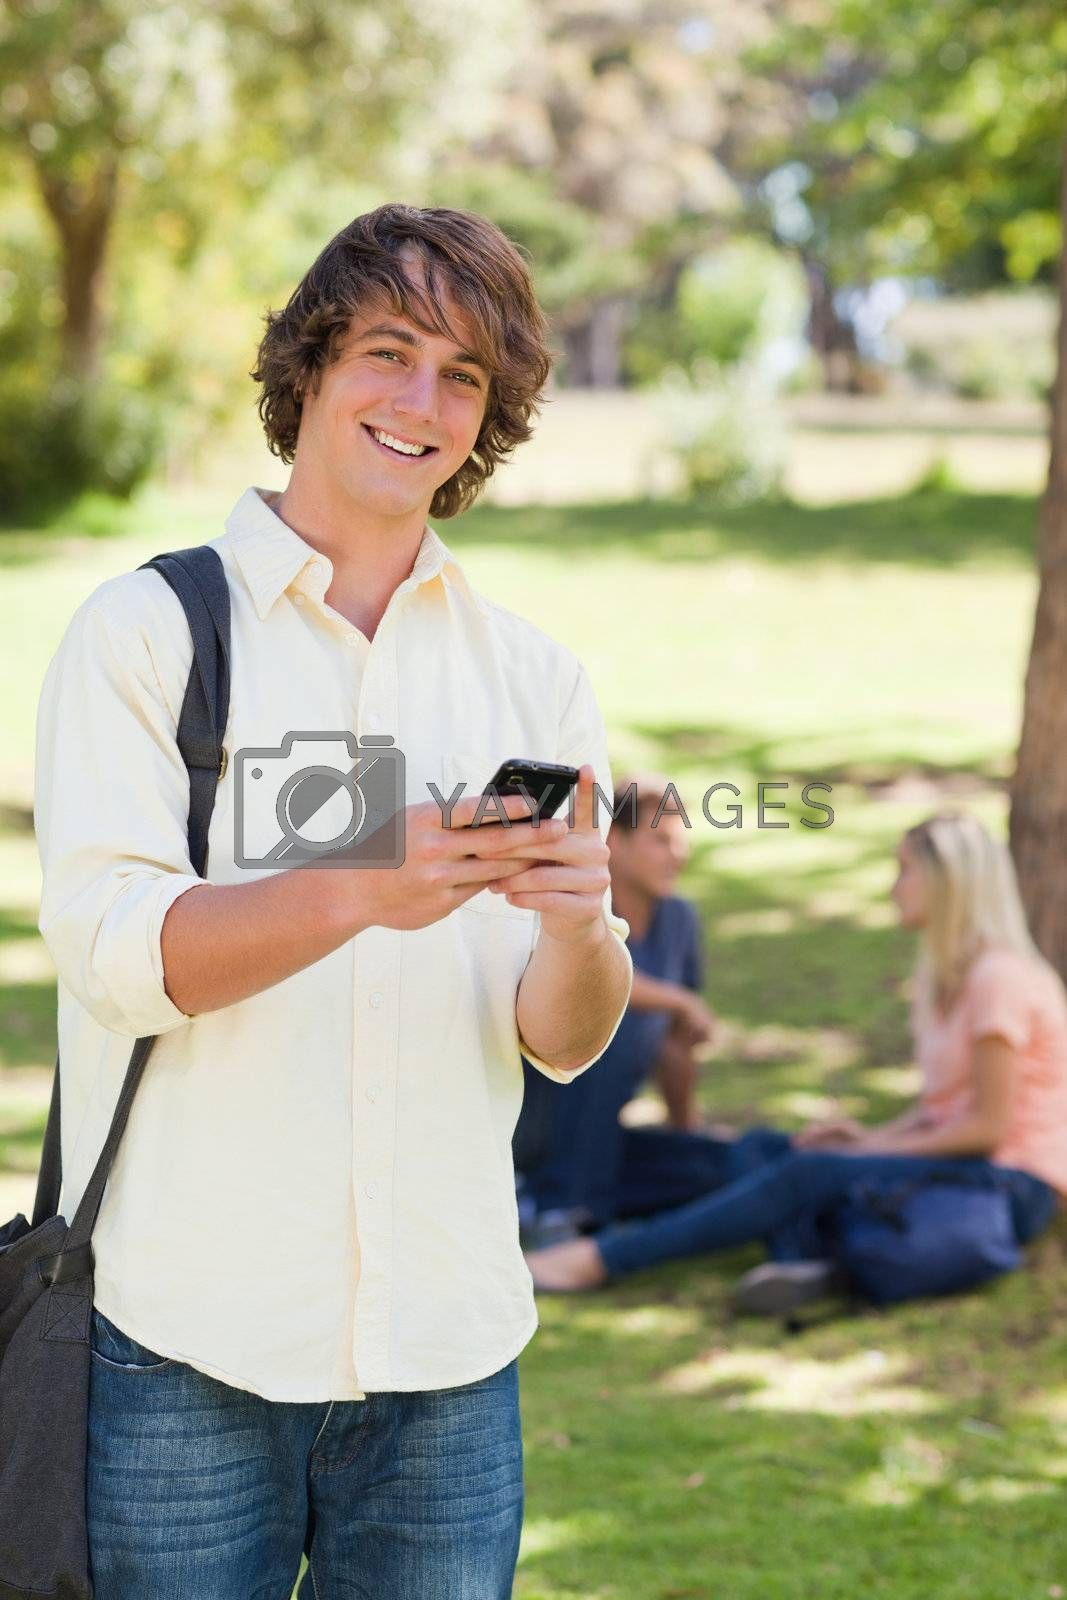 Portrait of a young man using a smartphone in a park with friends in background